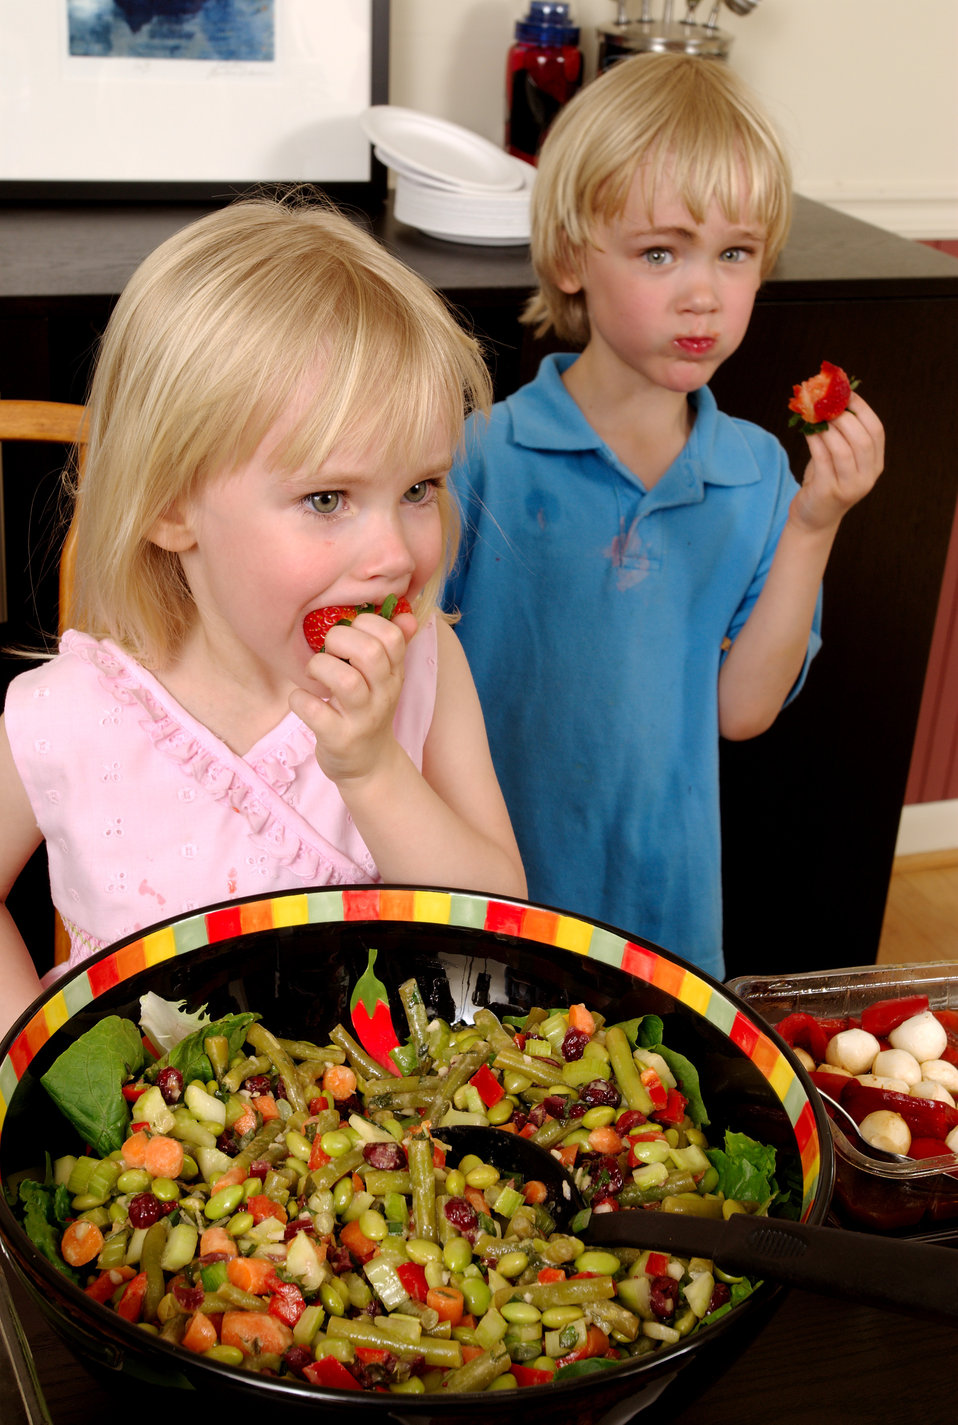 Here, two young children were at a dining table, upon which was plated a large quantity of foods representing a number of different food gro